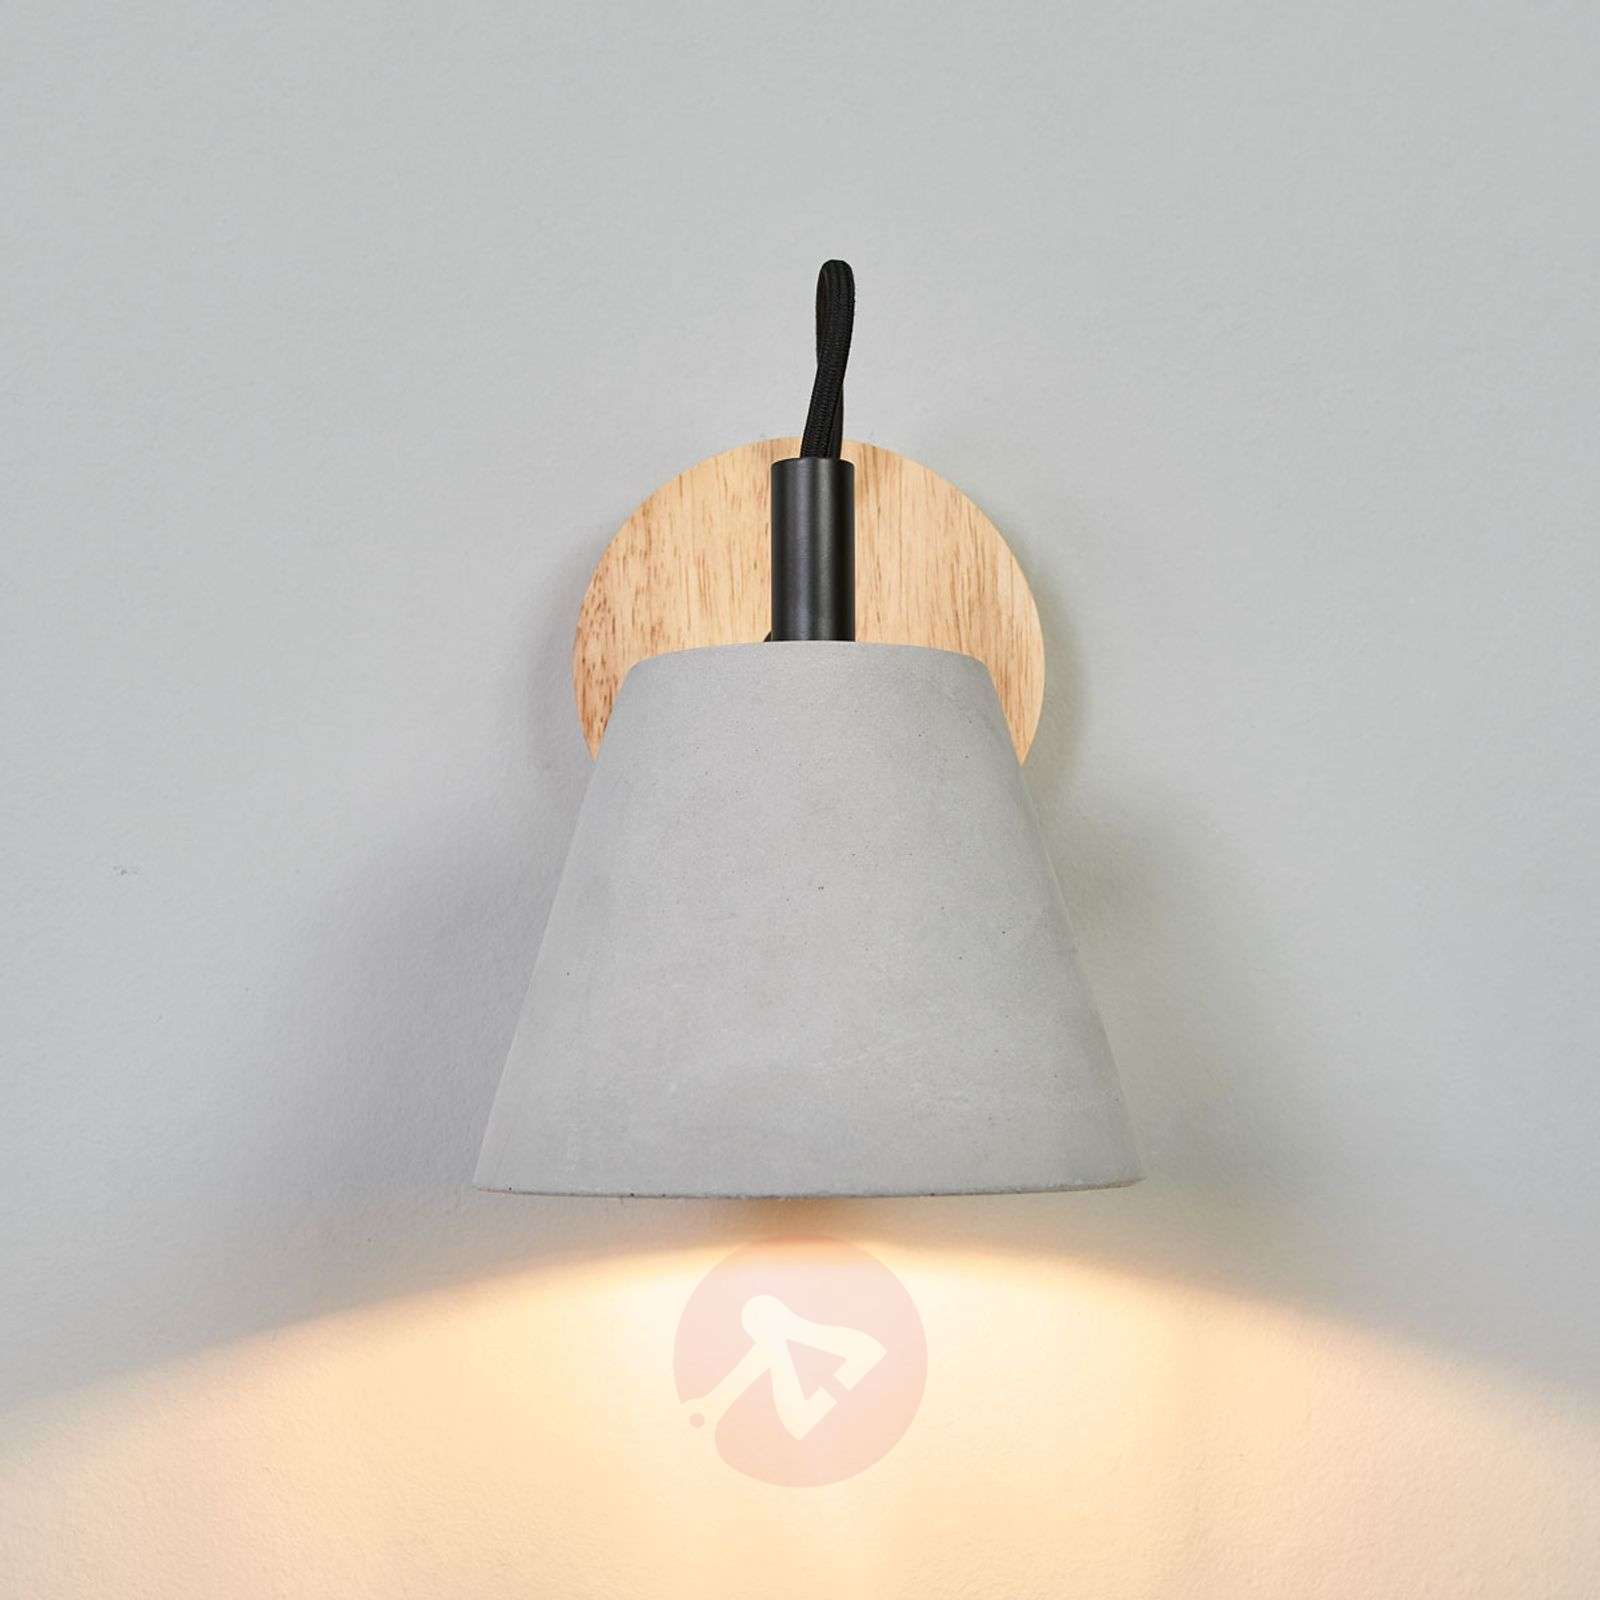 Possio wall light w. concrete lampshade and wood-6055259-01